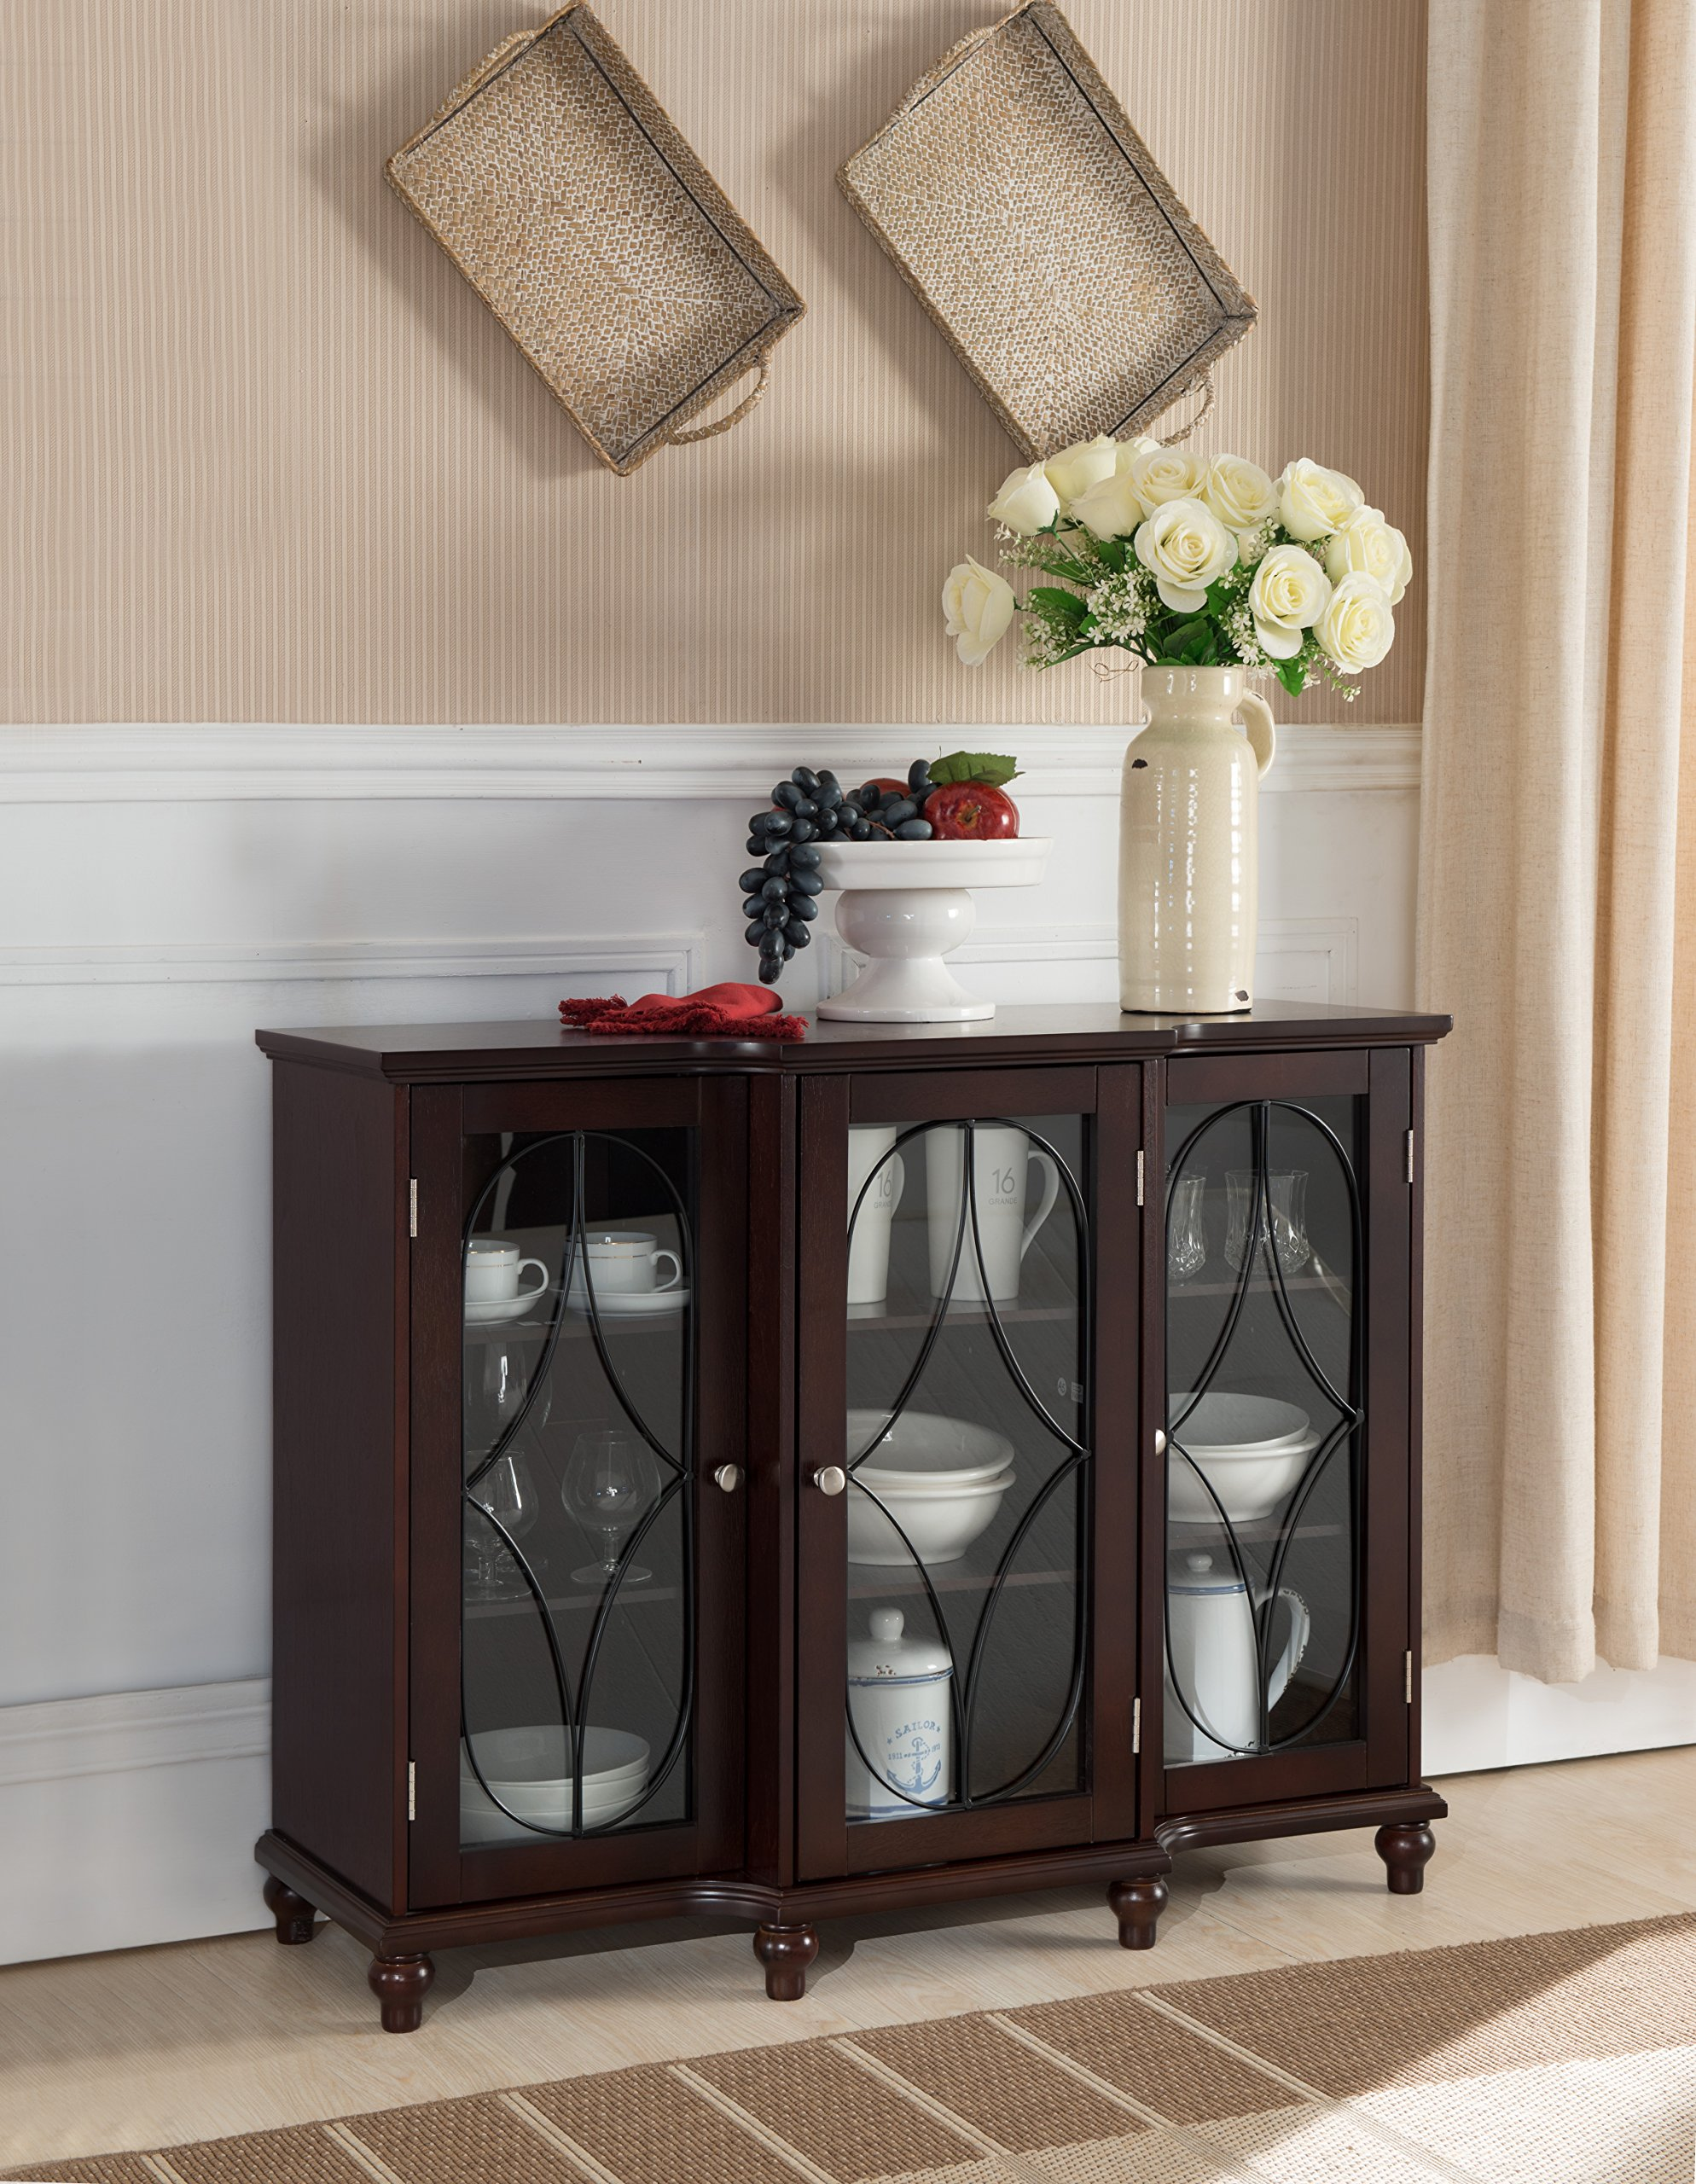 Kings Brand Furniture Wood Storage Sideboard Buffet Cabinet Console Table, Cherry